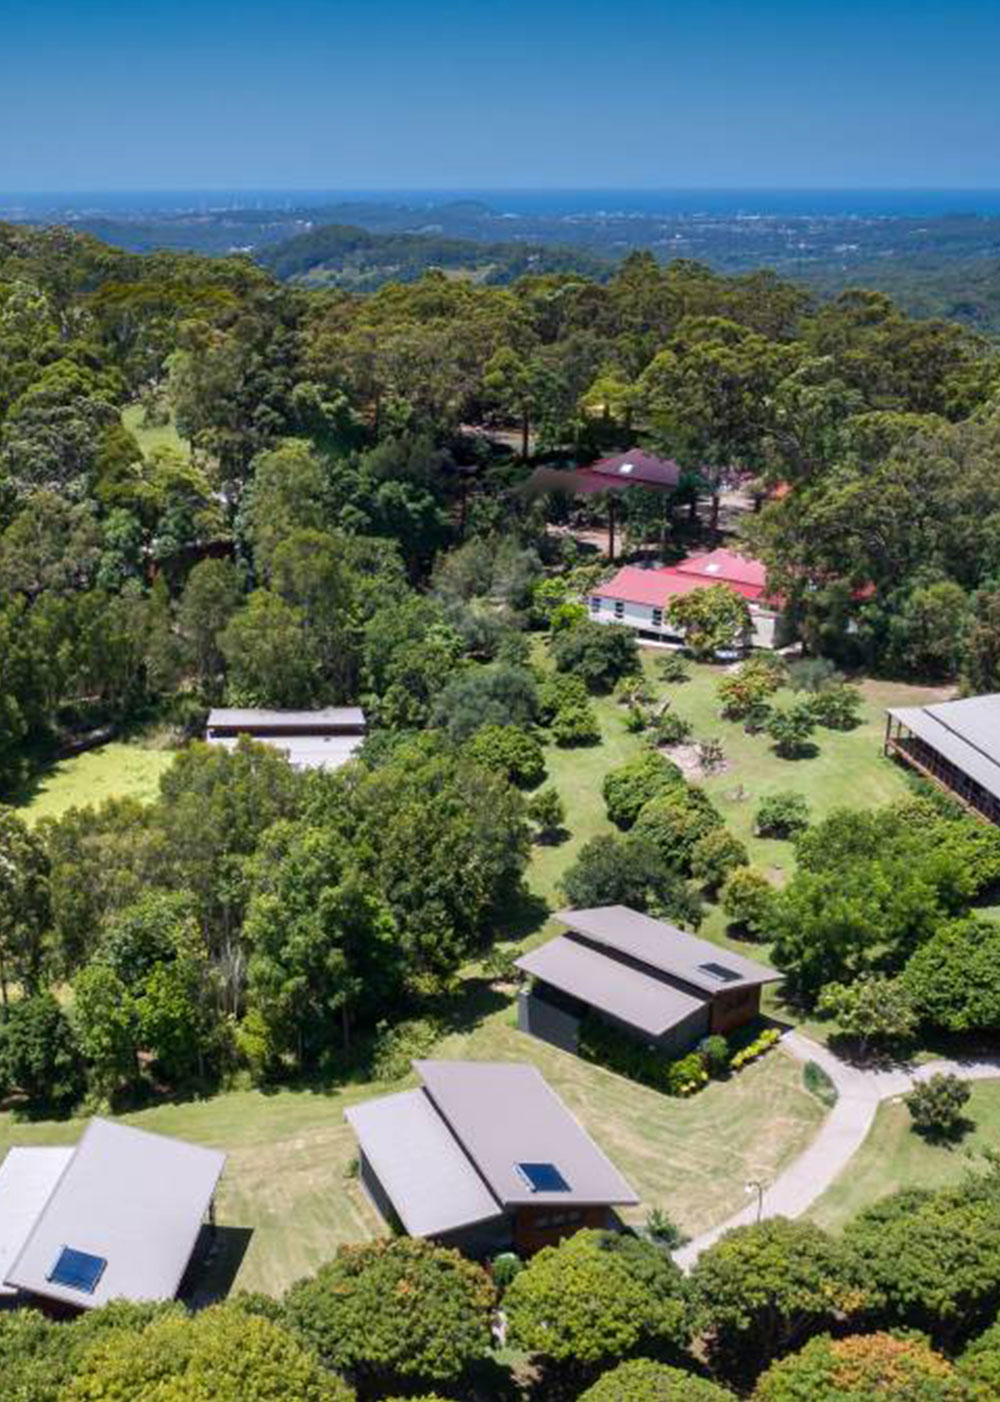 Aeiral view of Hugh Jackman's retreat